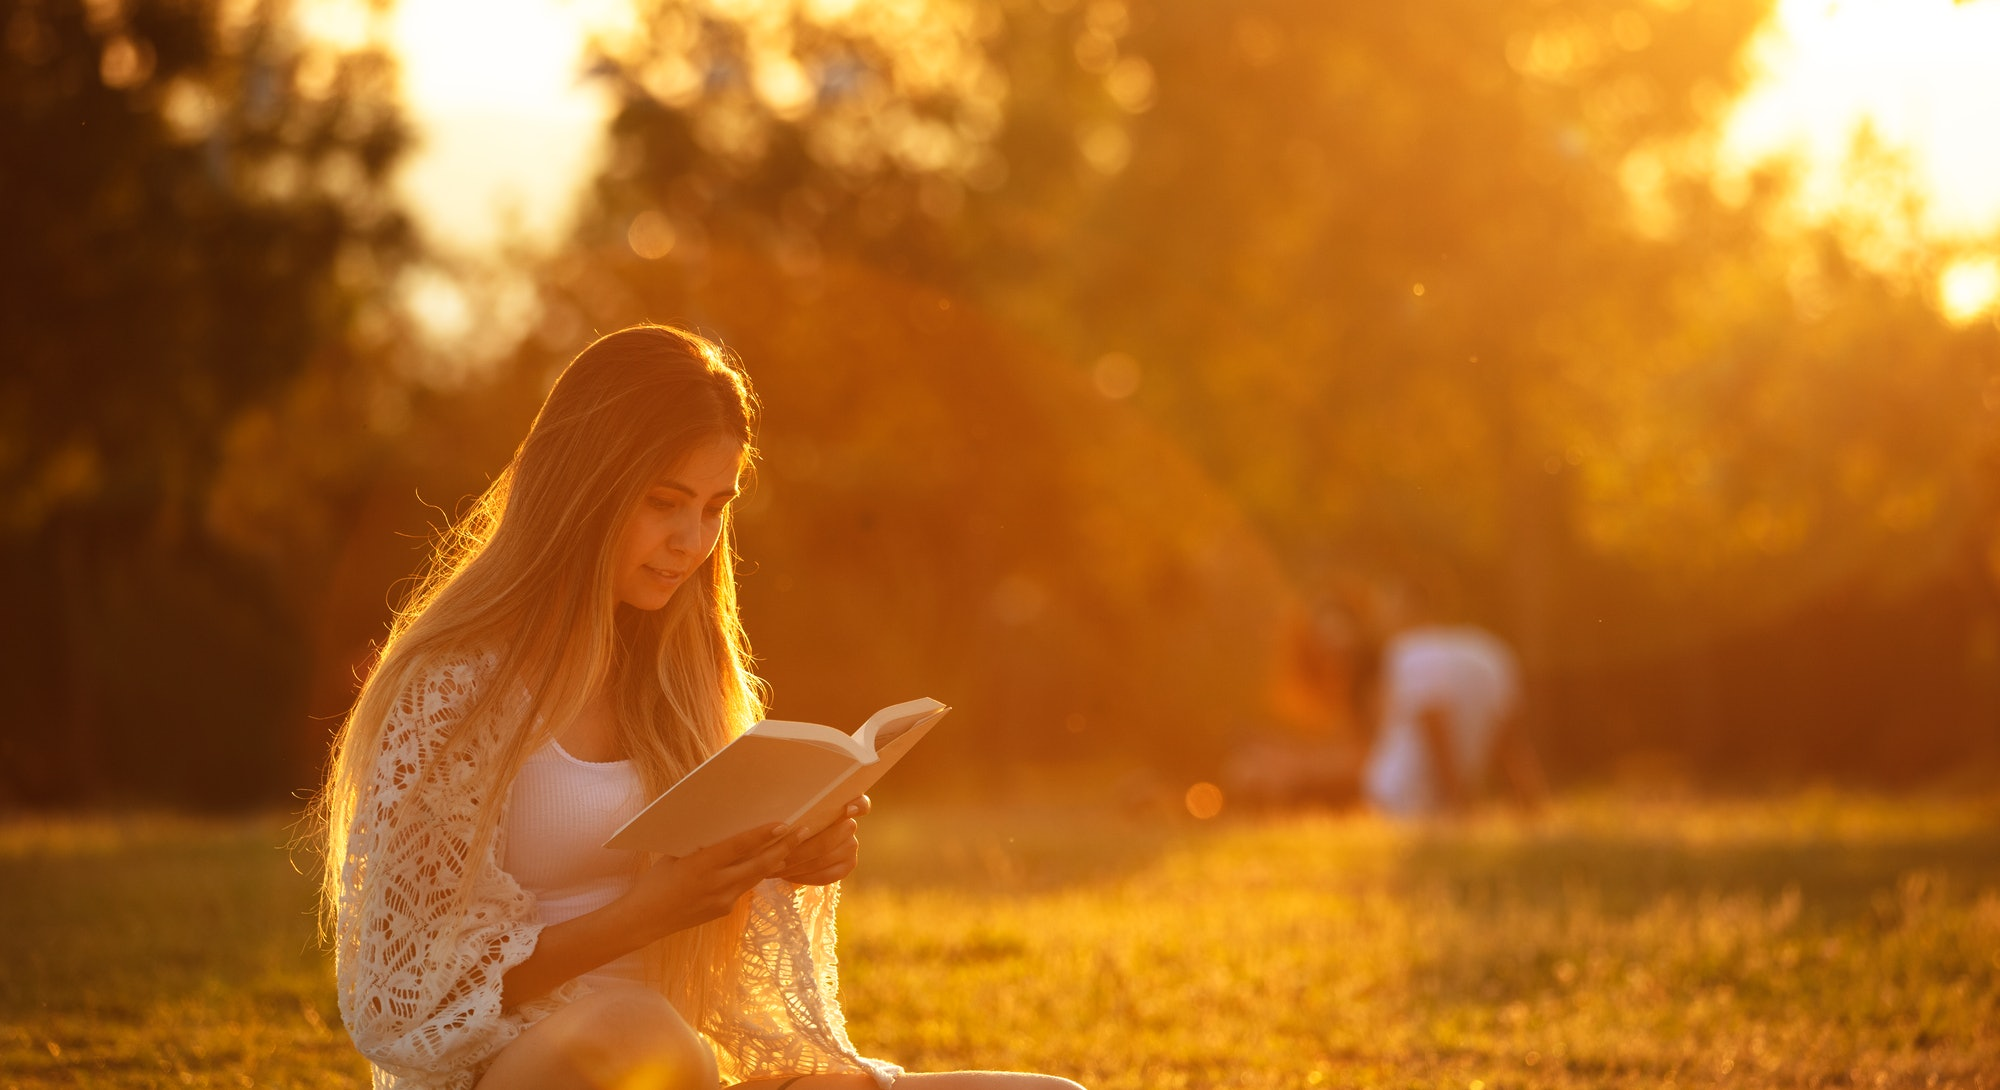 young woman studying on the grass at sunset